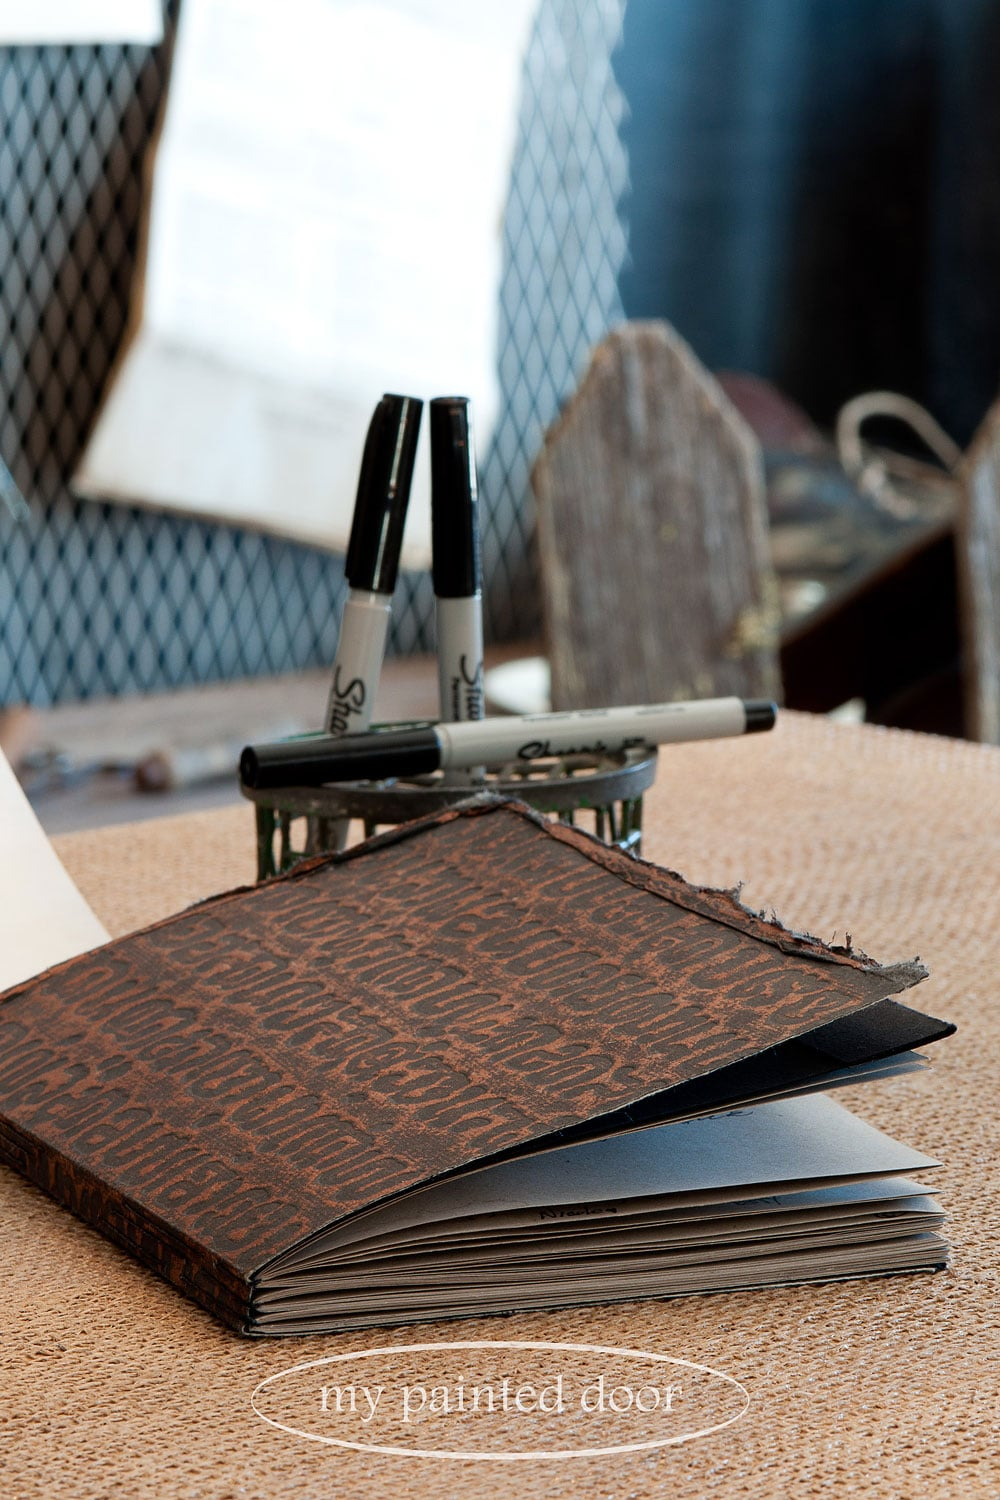 A beautiful guest book hand bound with a needle and thread